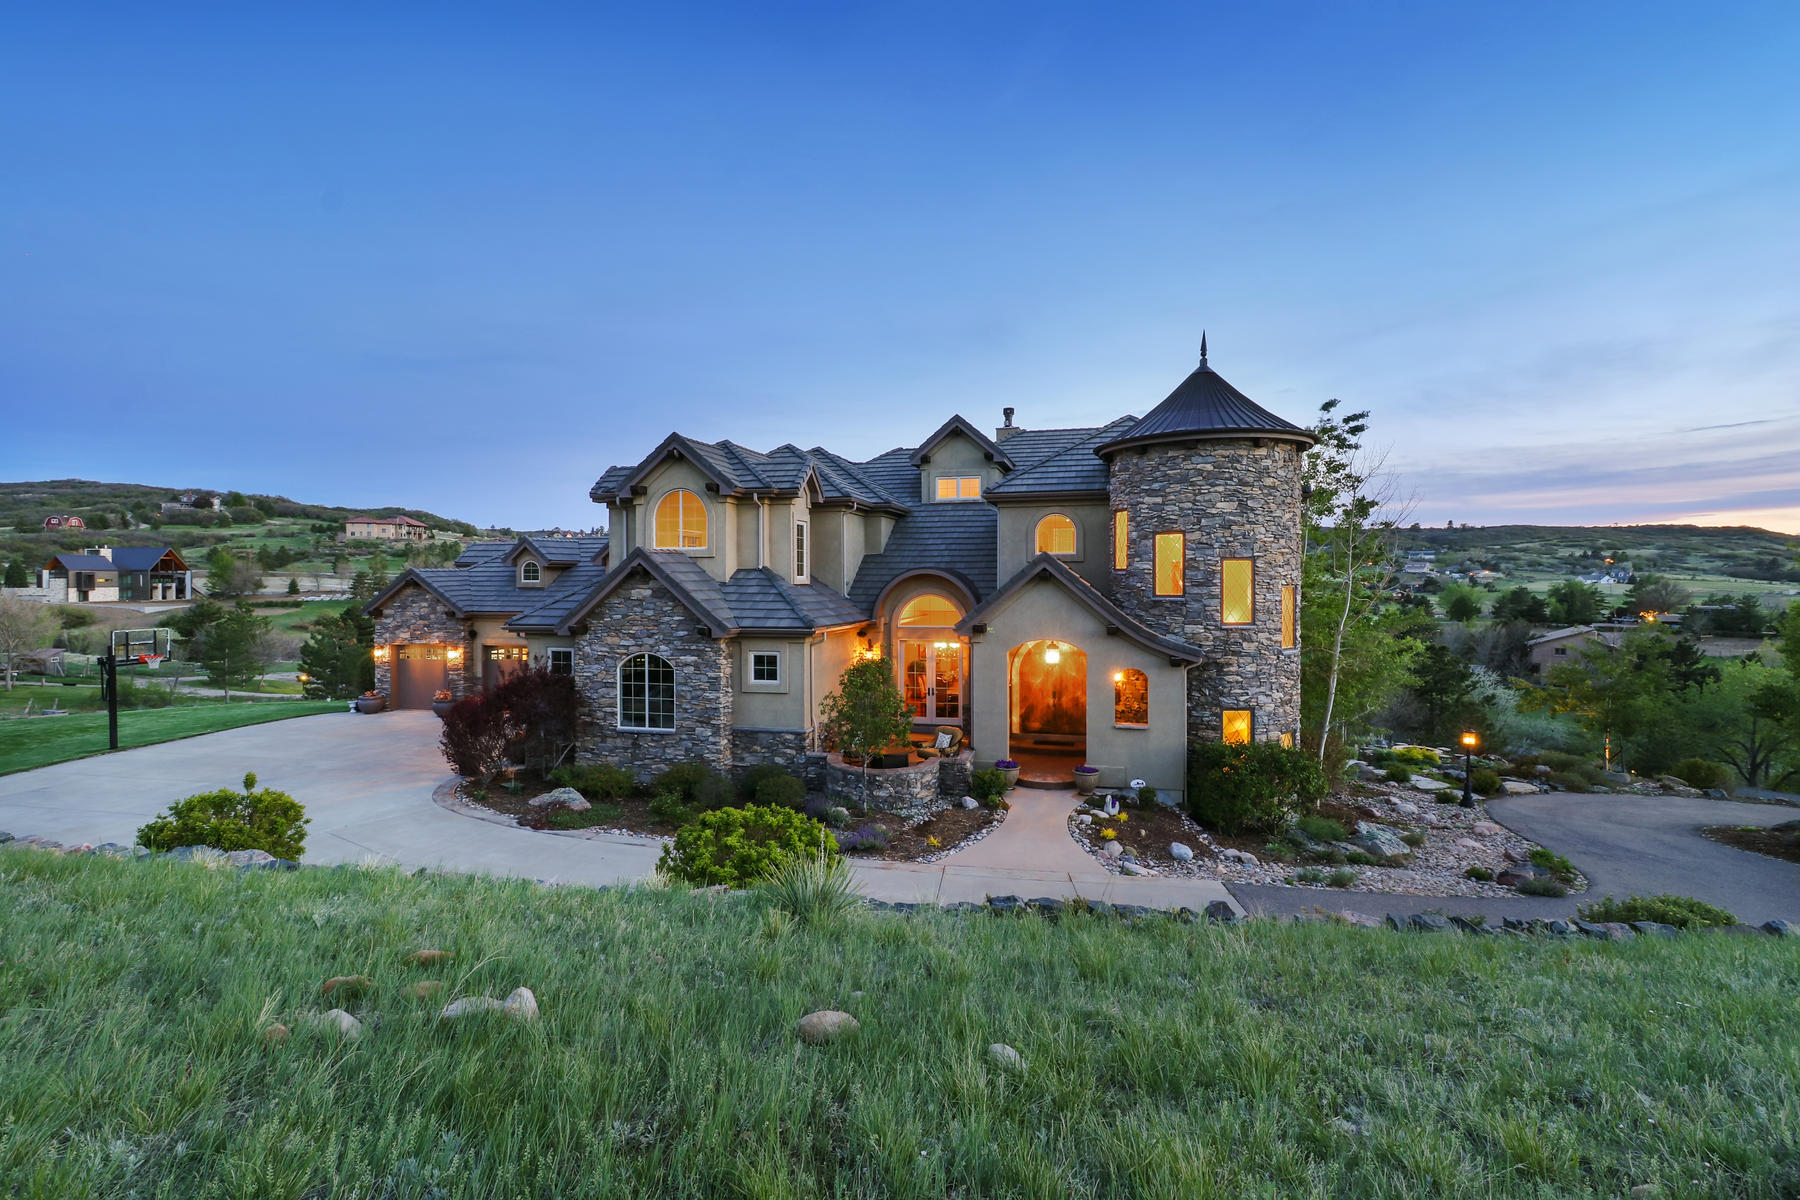 Single Family Home for Sale at Stunning mountain views at this luxurious custom built home 10714 Flatiron Rd Littleton, Colorado, 80124 United States